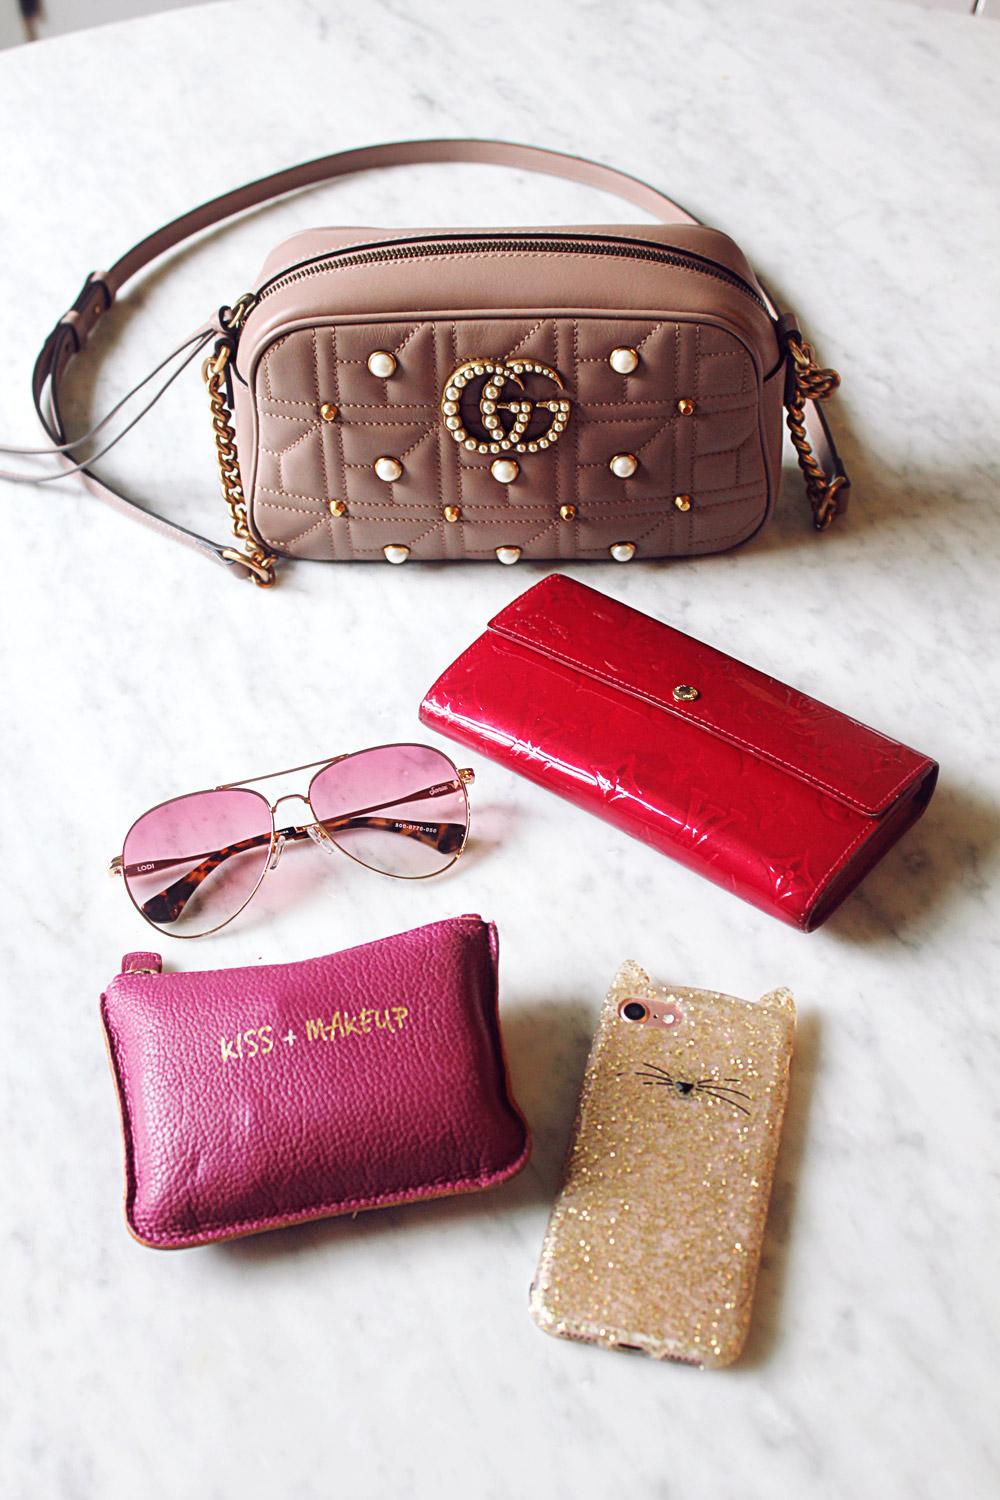 gucci marmont pearl taupe nude pink camera bag review what fits in the bag lv vernis long wallet sonix aviator sunglasses